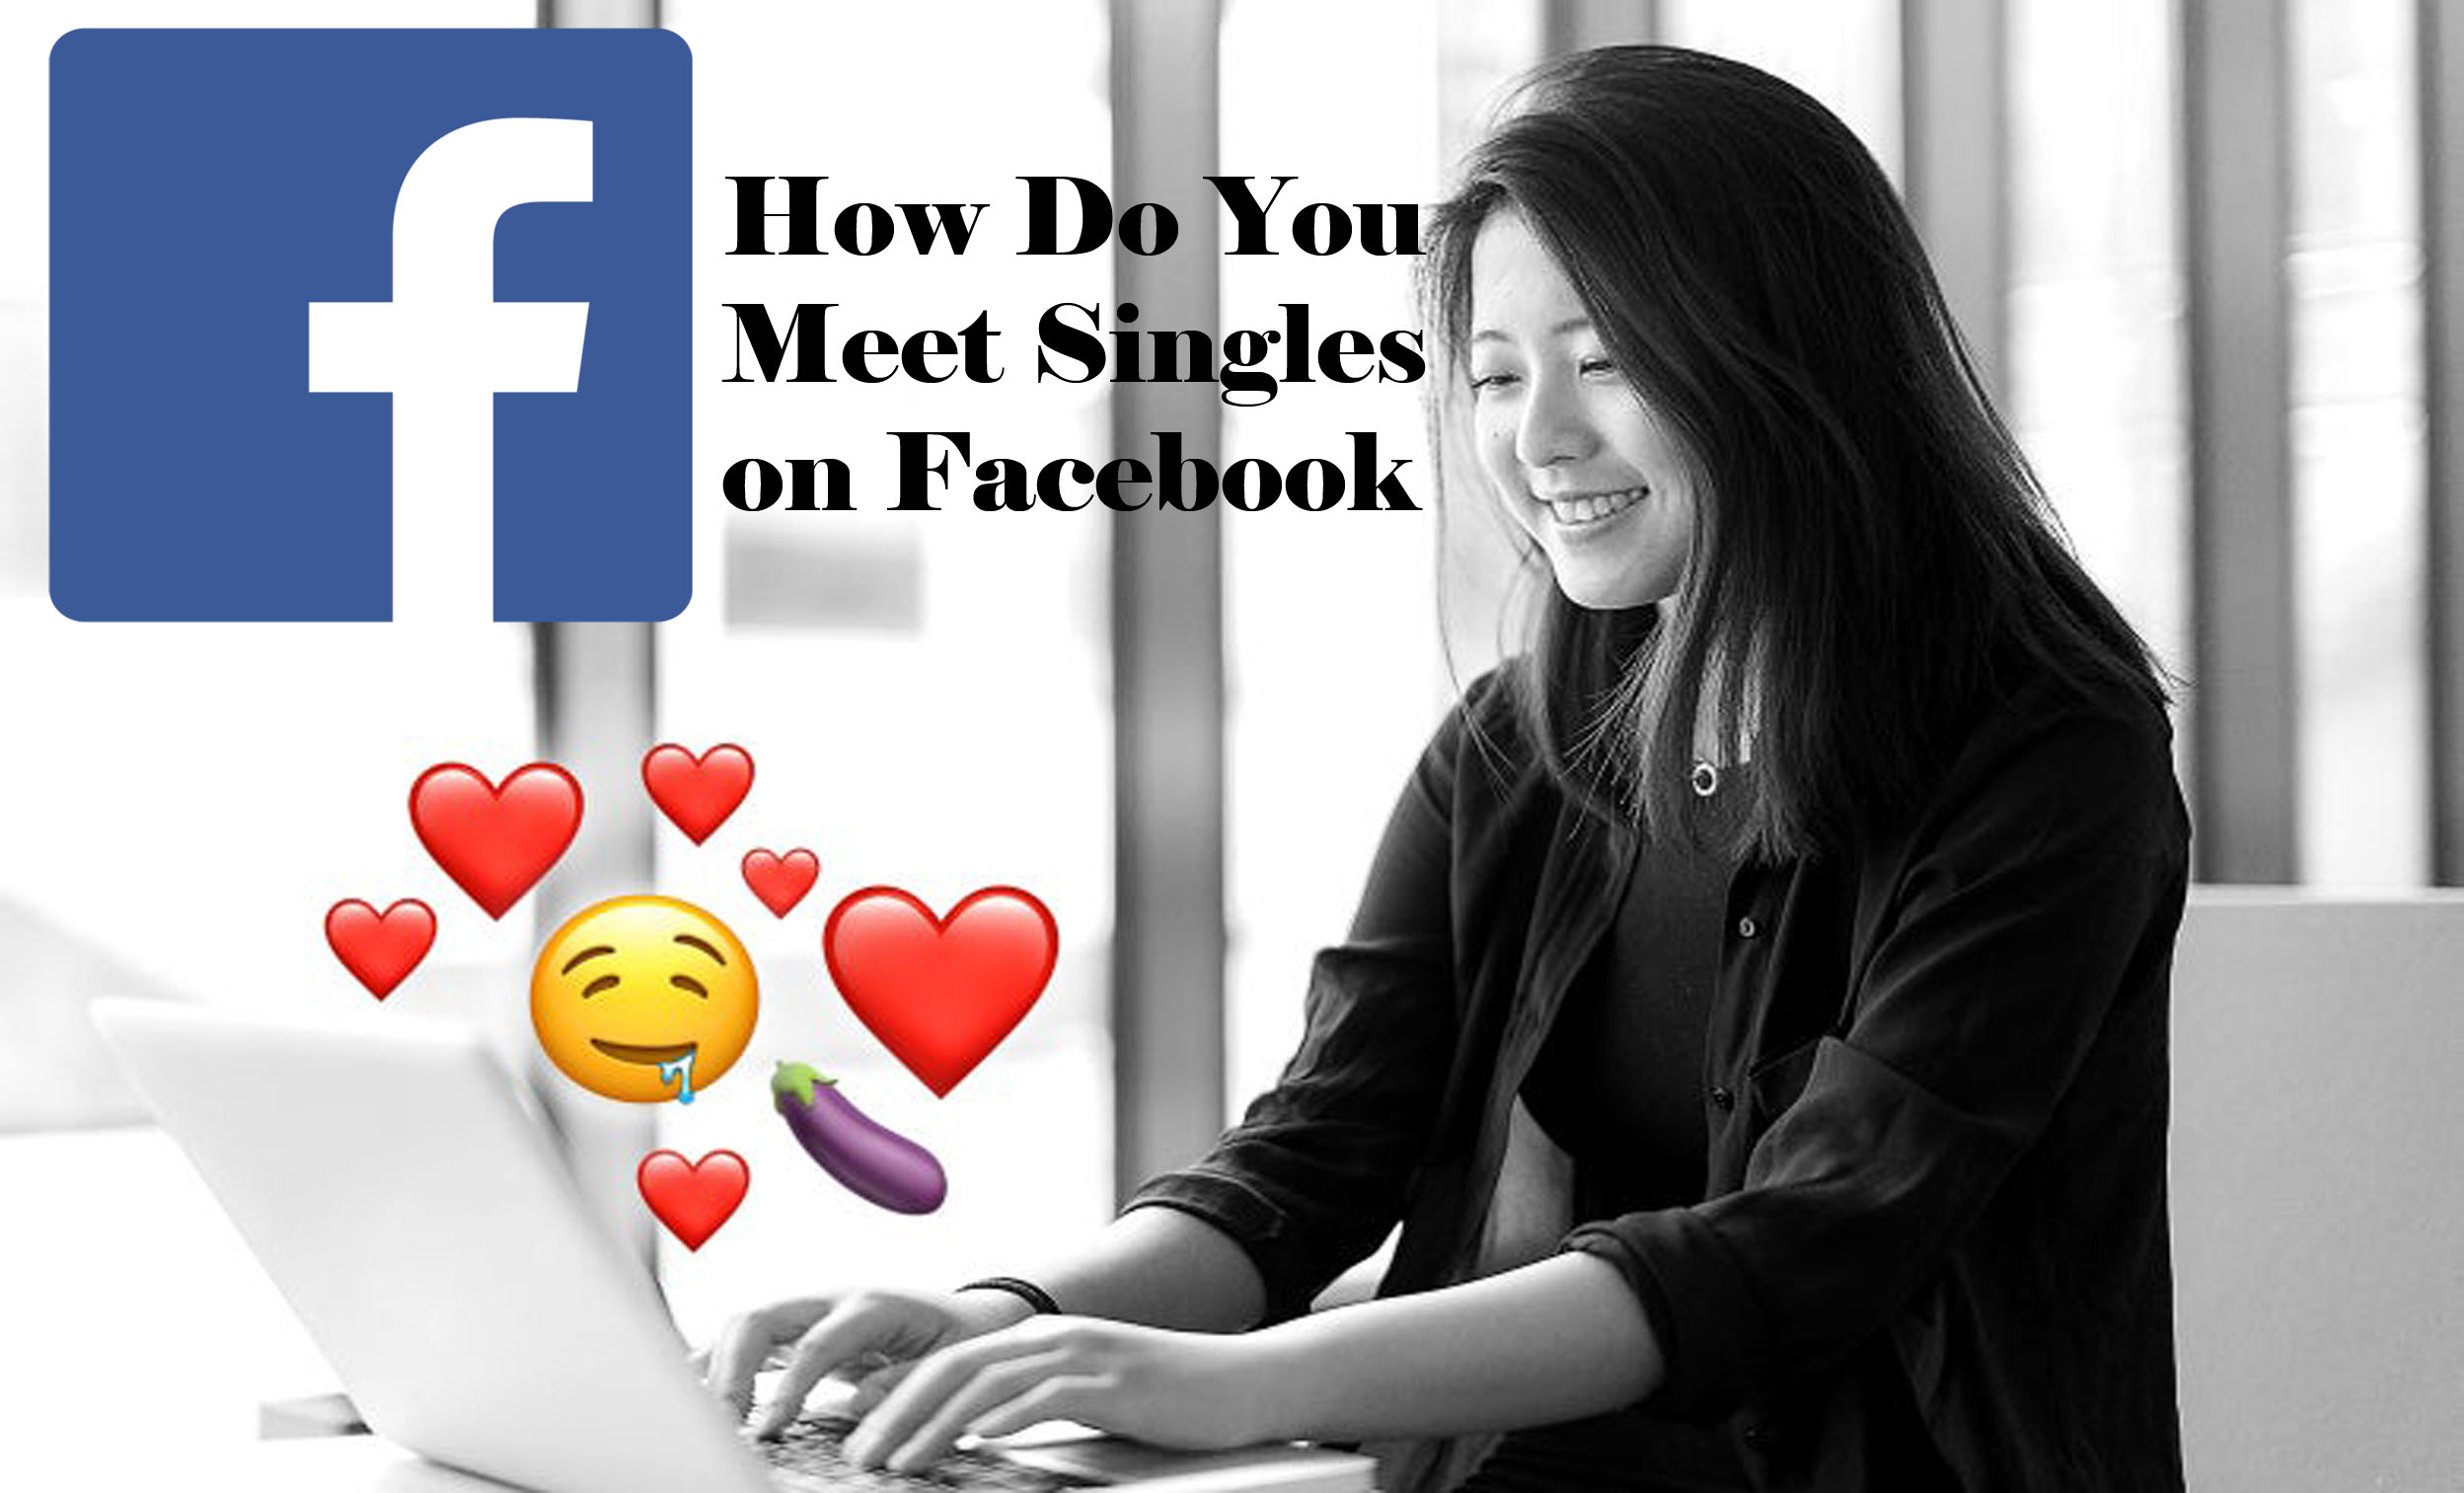 How Do You Meet Singles on Facebook